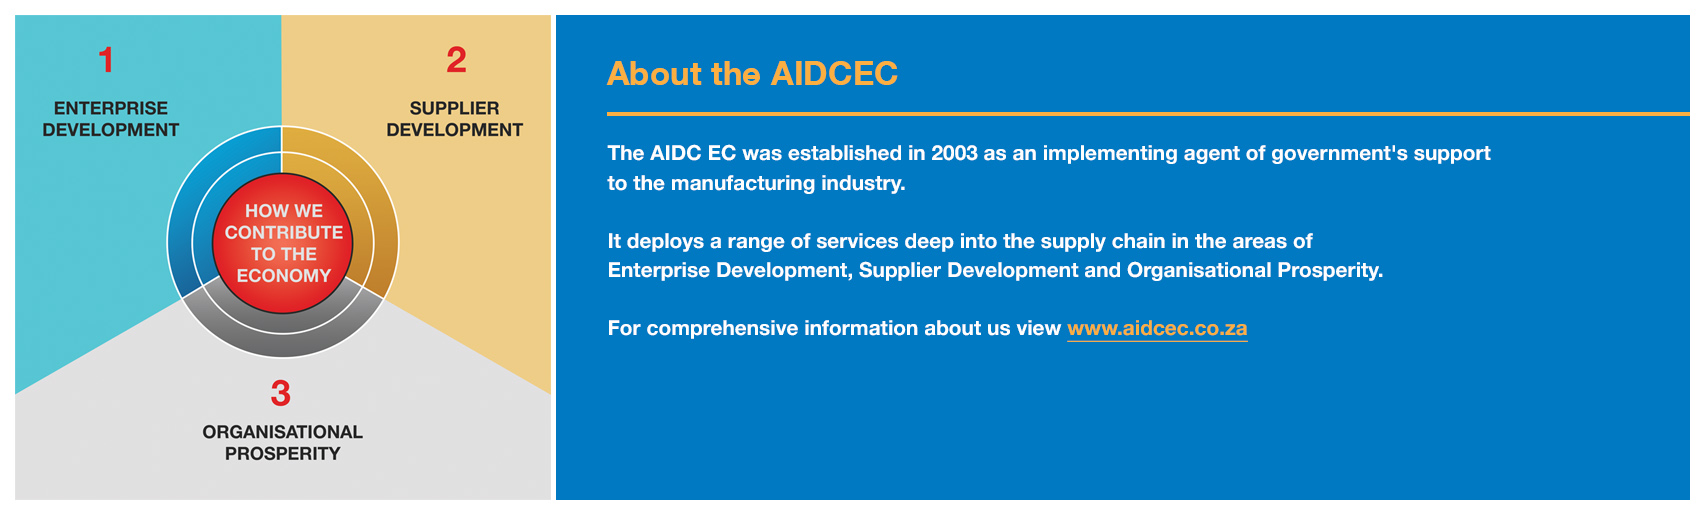 How we contribute to the economy: 1. Enterprise Development, 2. Supplier Development, 3. Organisational Prosperity. About the AIDCEC The AIDC EC was established in 2003 as an implementing agent of government's support to the manufacturing industry. It deploys a range of services deep into the supply chain in the areas of Enterprise Development, Supplier Development and Organisational Prosperity. For comprehensive information about us view www.aidcec.co.za.